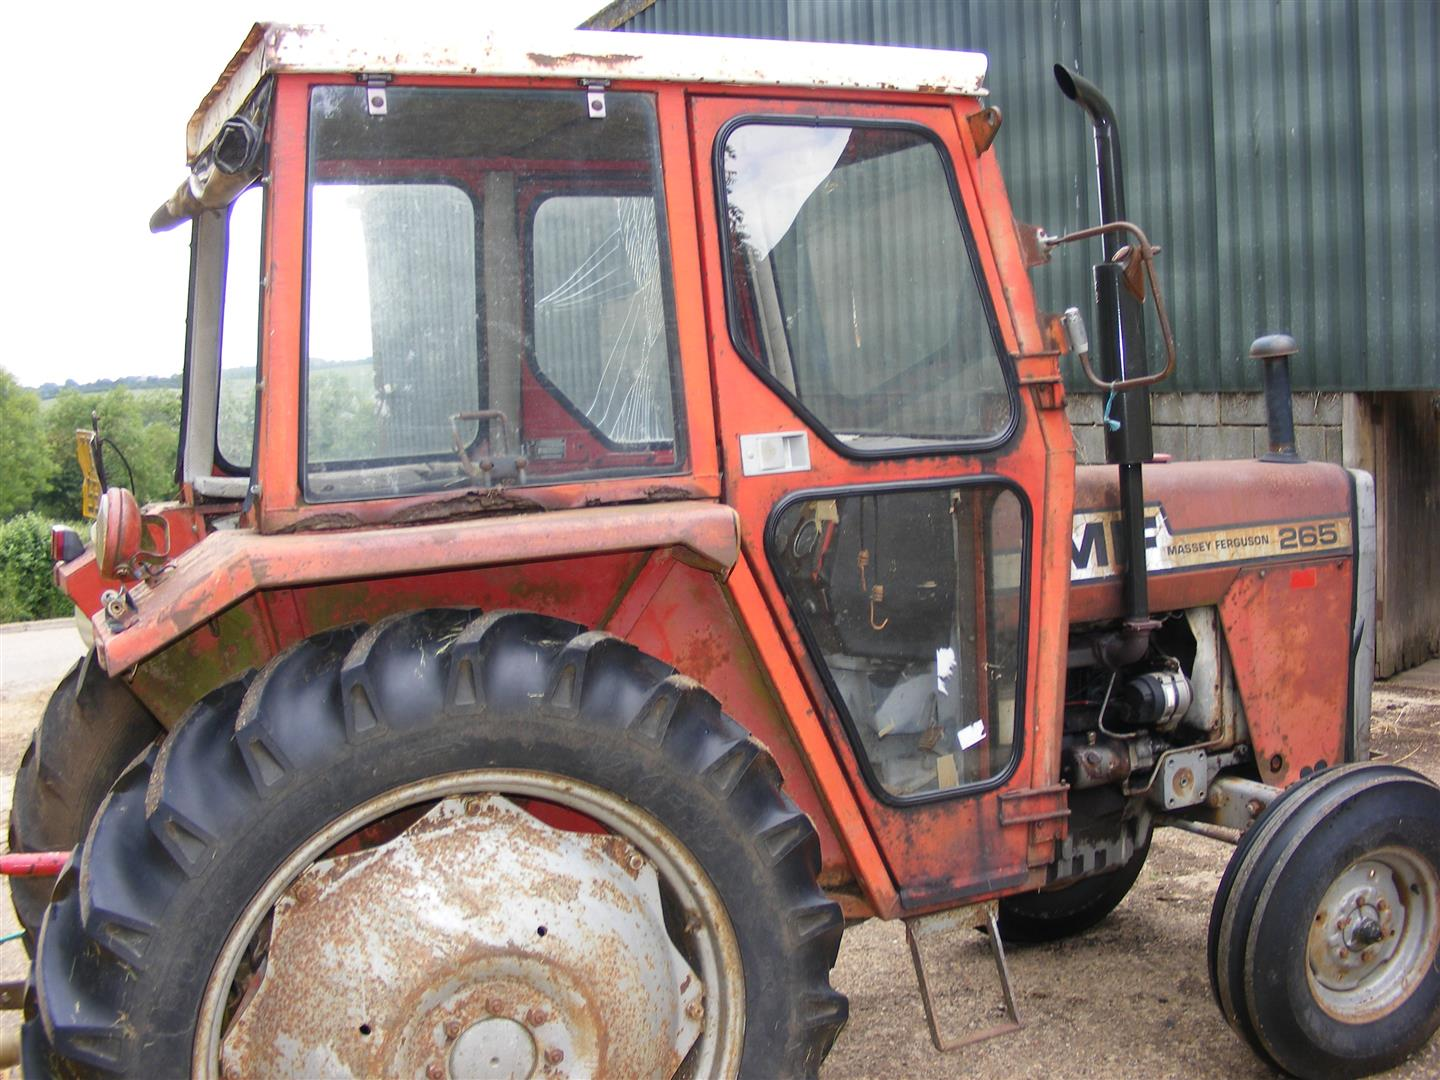 mcconnel rhino topper, mf265 | The Farming Forum